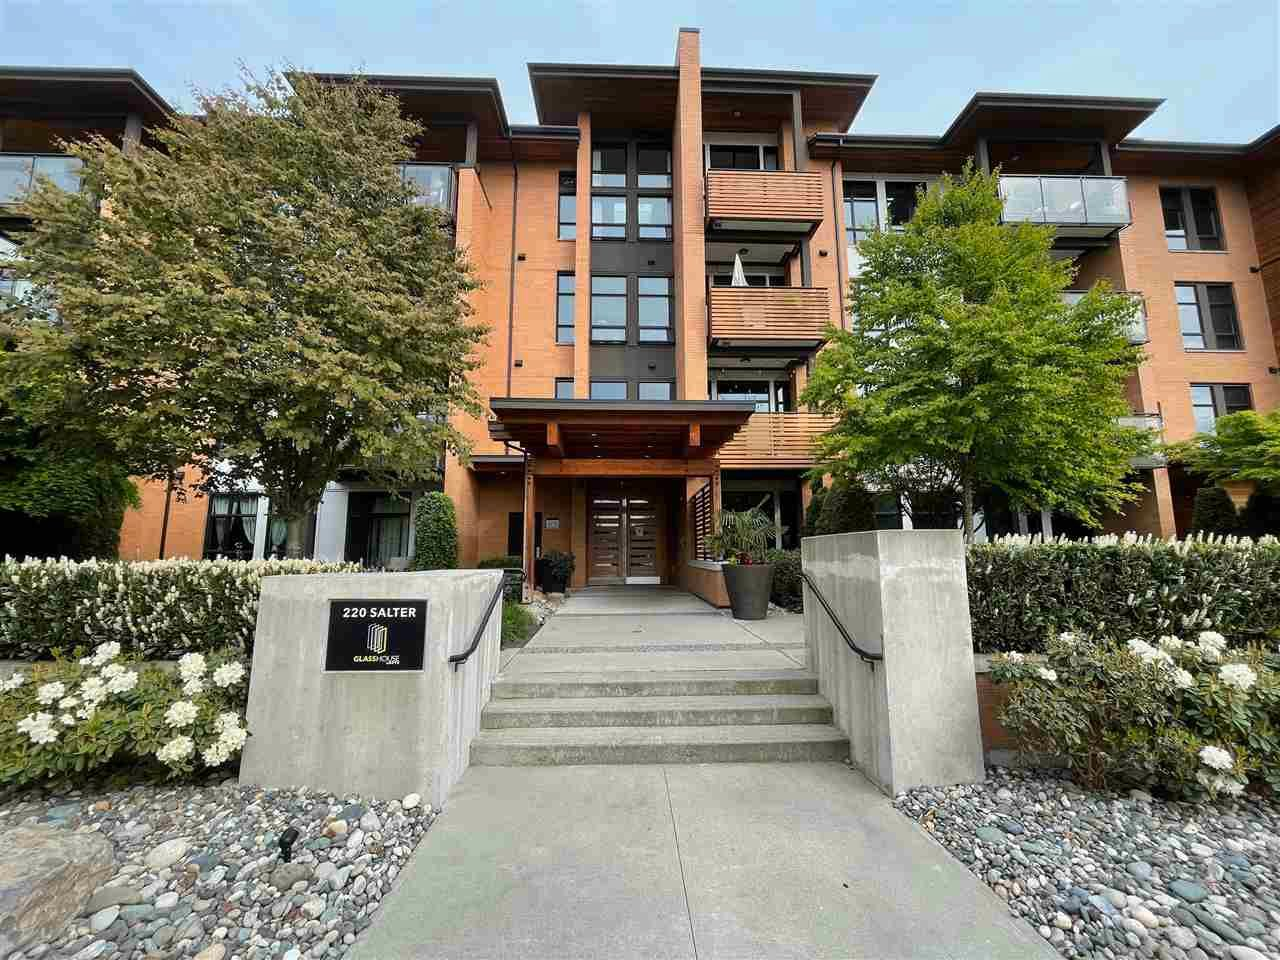 Main Photo: 205 220 SALTER Street in New Westminster: Queensborough Condo for sale : MLS®# R2588294